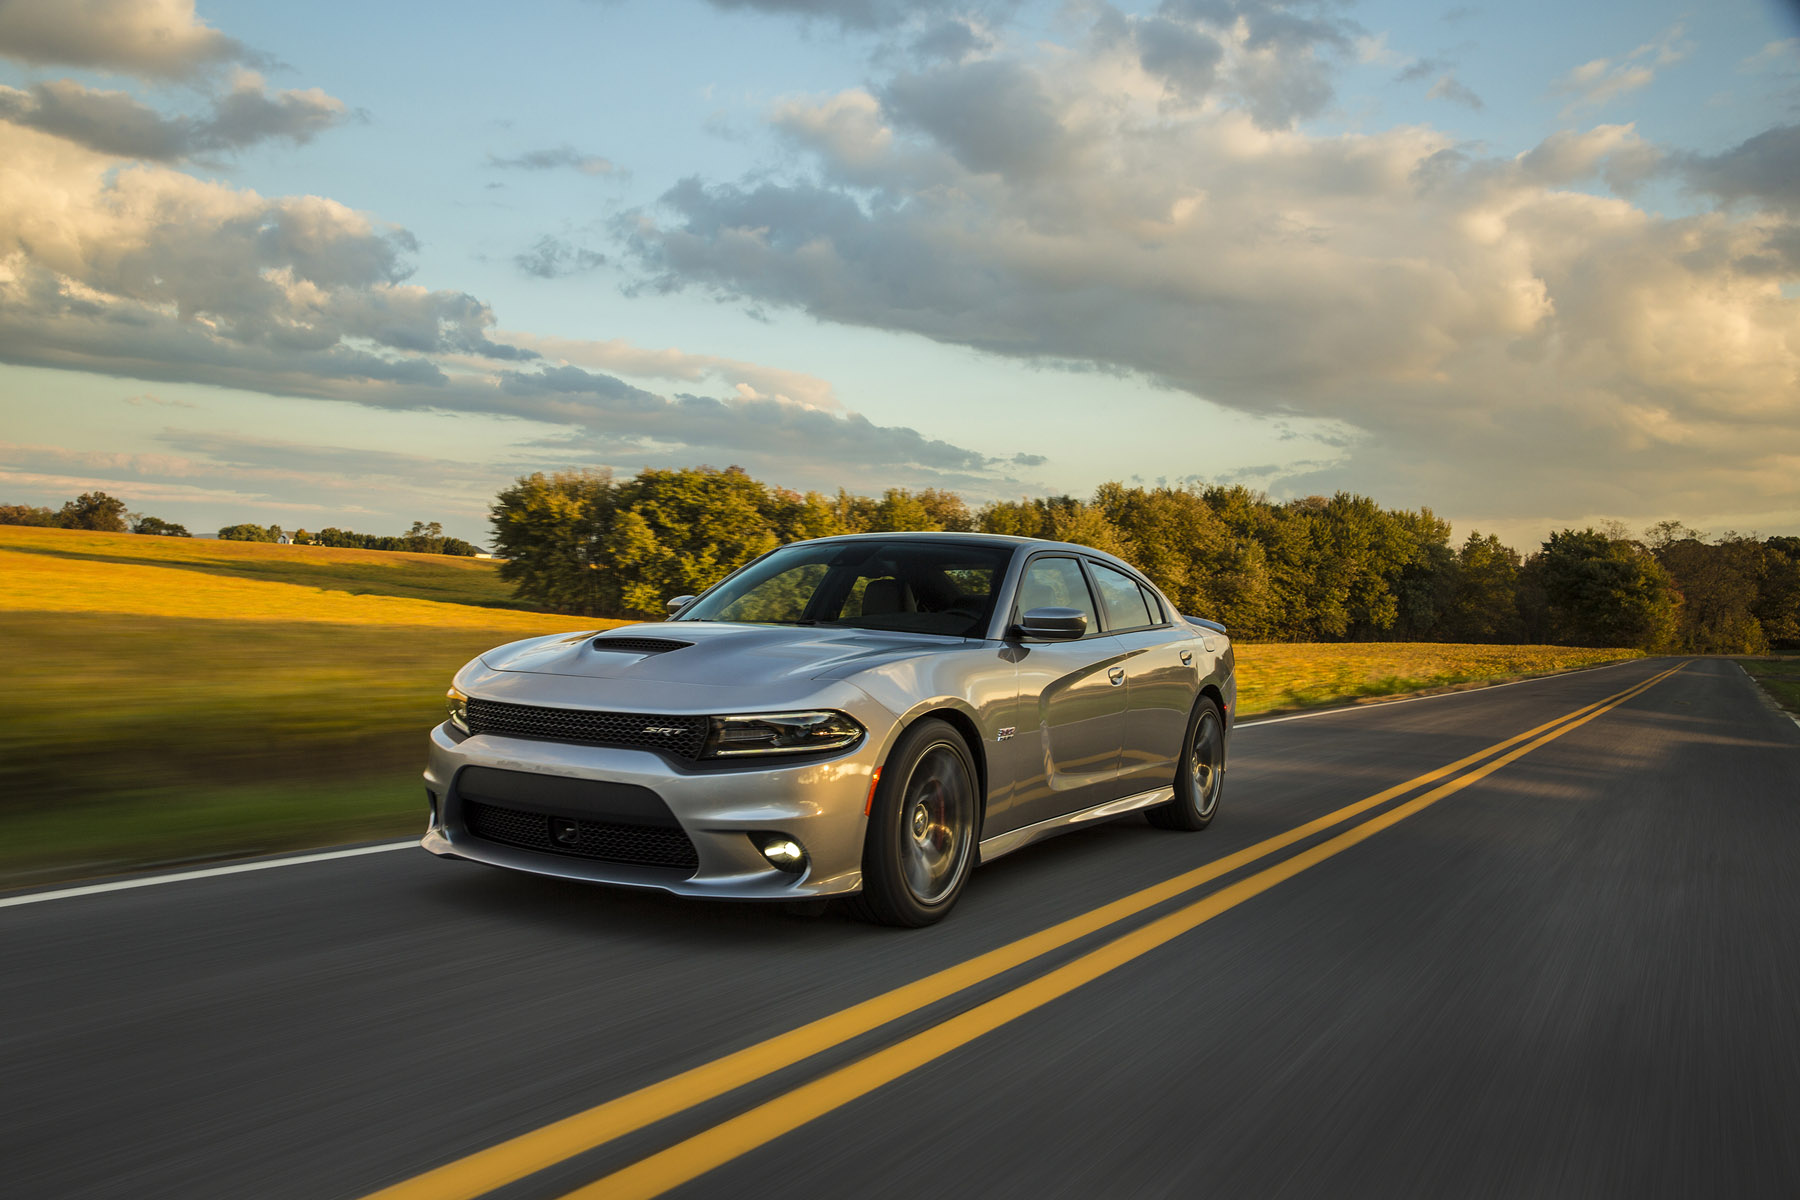 2015 dodge charger srt hellcat and srt 392 power 2015 charger to new levels of performance. Black Bedroom Furniture Sets. Home Design Ideas